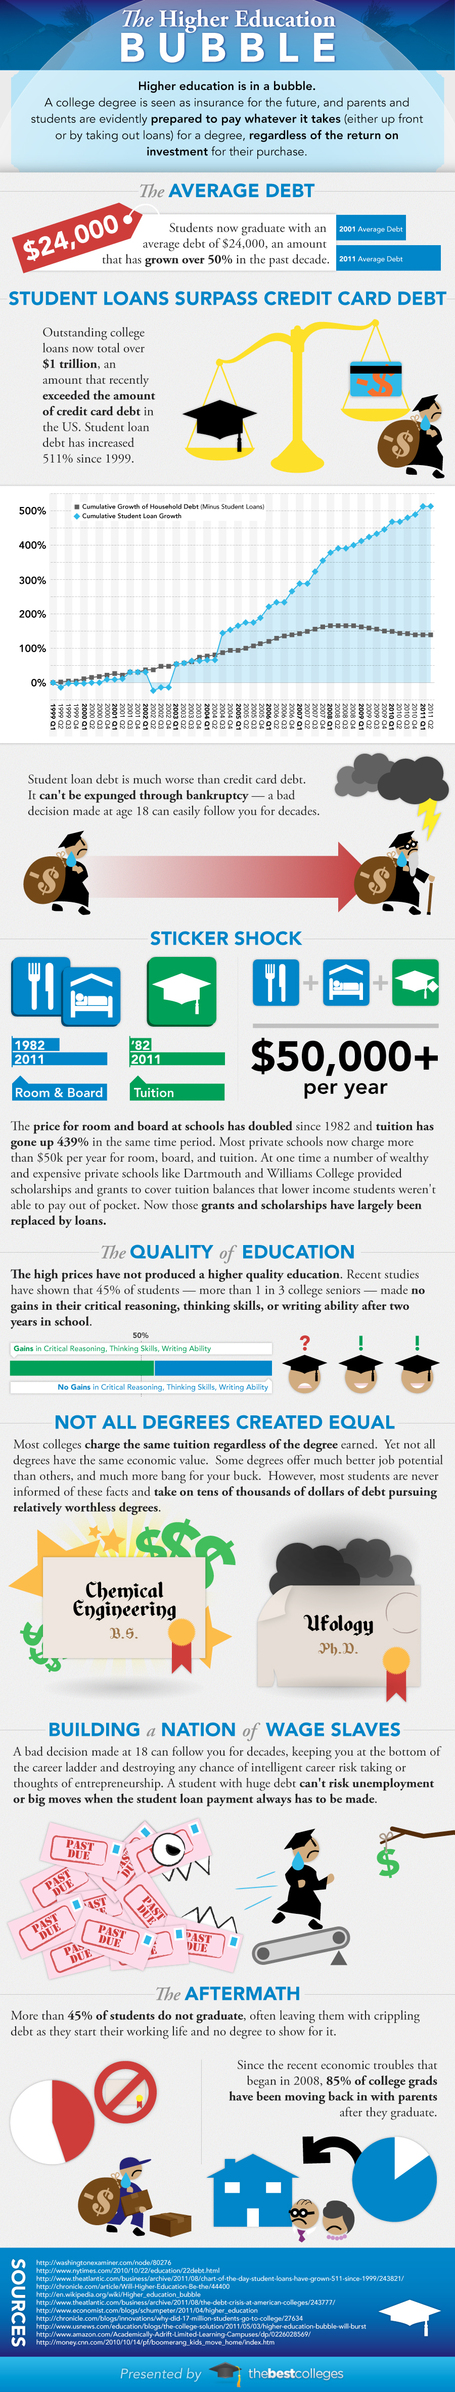 The Higher Education Bubble [infographic] | Higher Education and academic research | Scoop.it